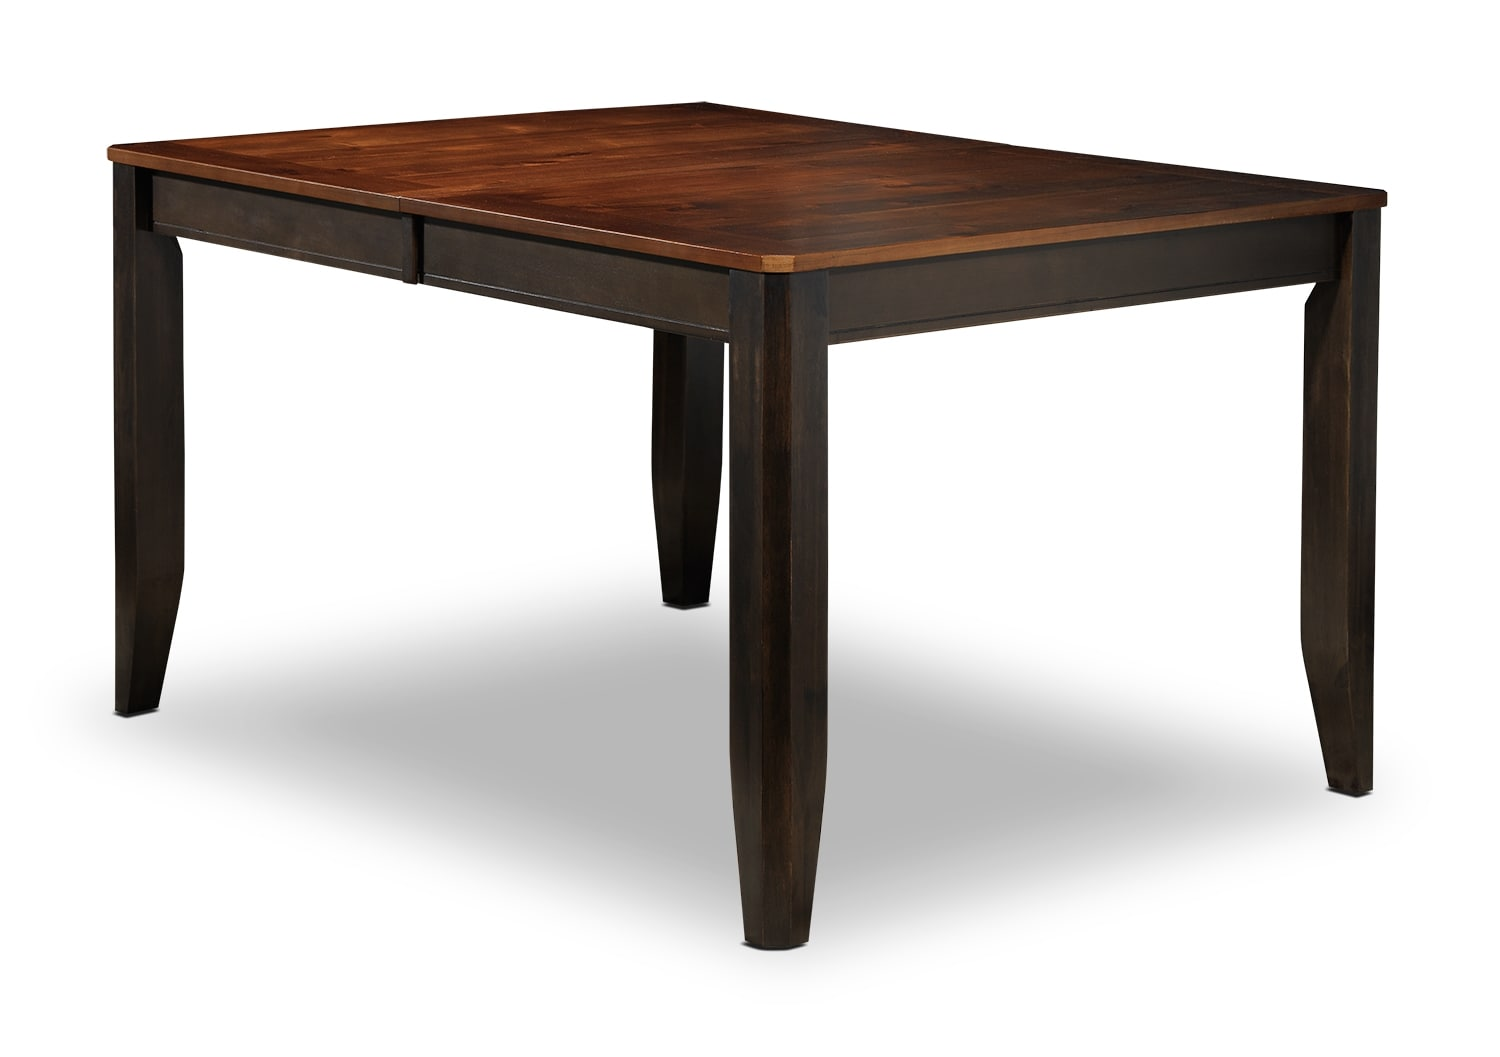 Casual Dining Room Furniture - Krista Table